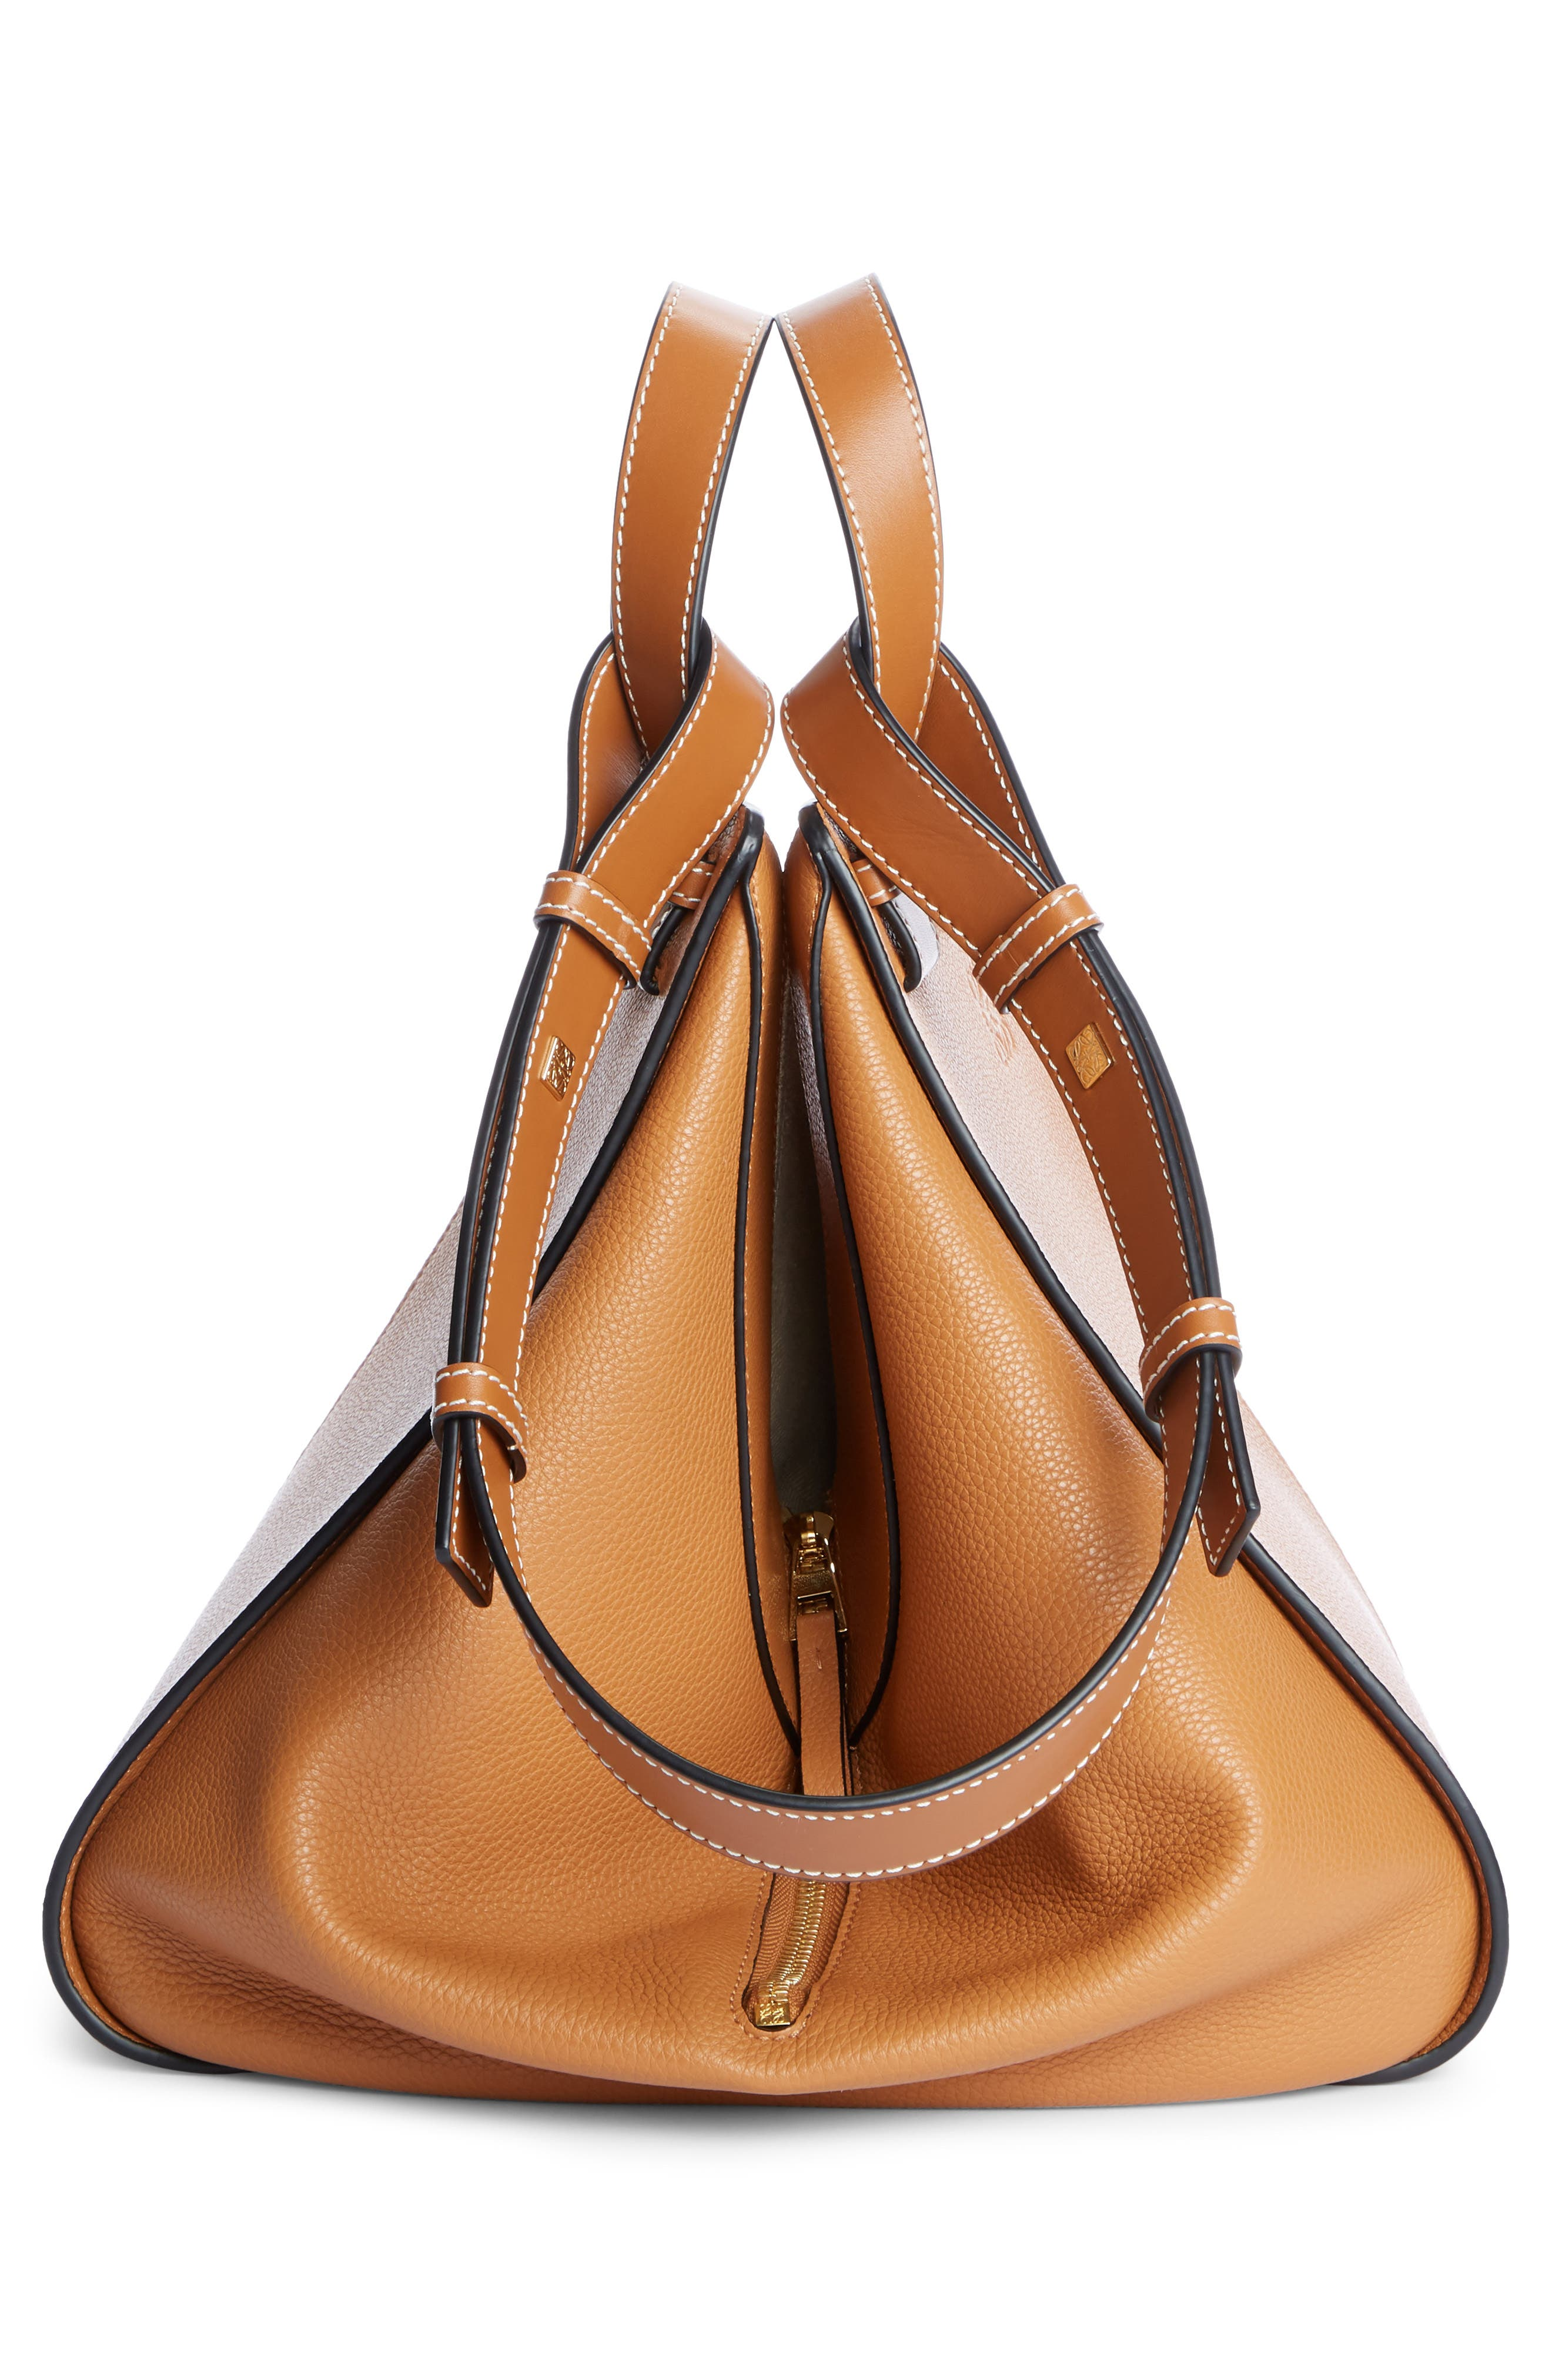 Medium Hammock Calfskin Leather Shoulder Bag,                             Alternate thumbnail 3, color,                             250